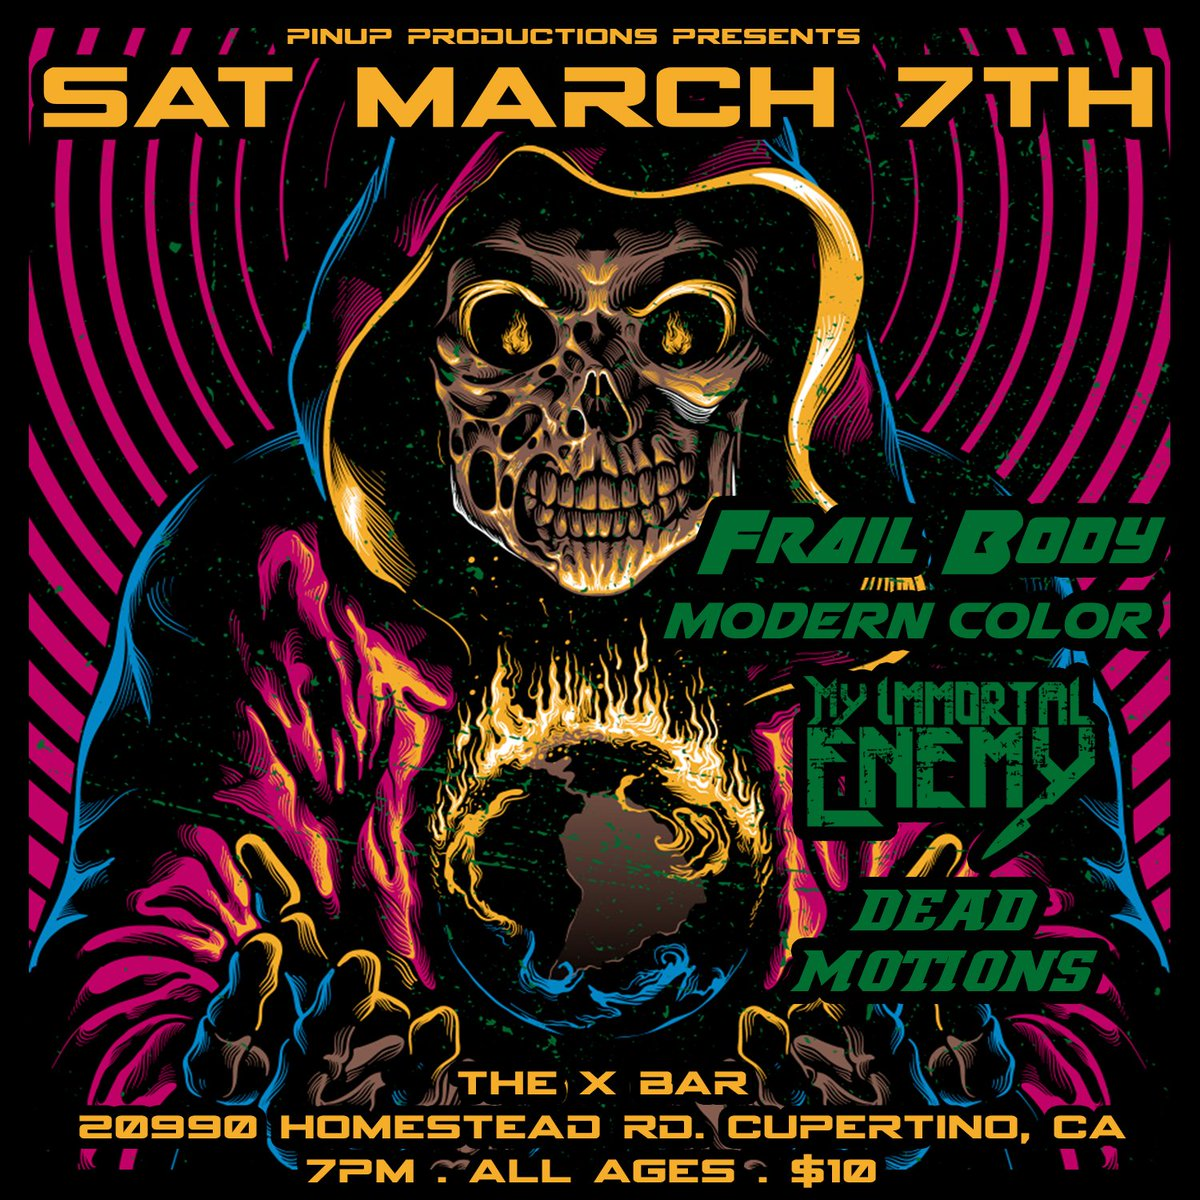 @StevenJuliano of I Am Ghost's new band @MyImmortalEnemy has their first show of 2020 THIS Saturday in San Jose, CA! ALL AGES! https://t.co/xMl7Jth2hi